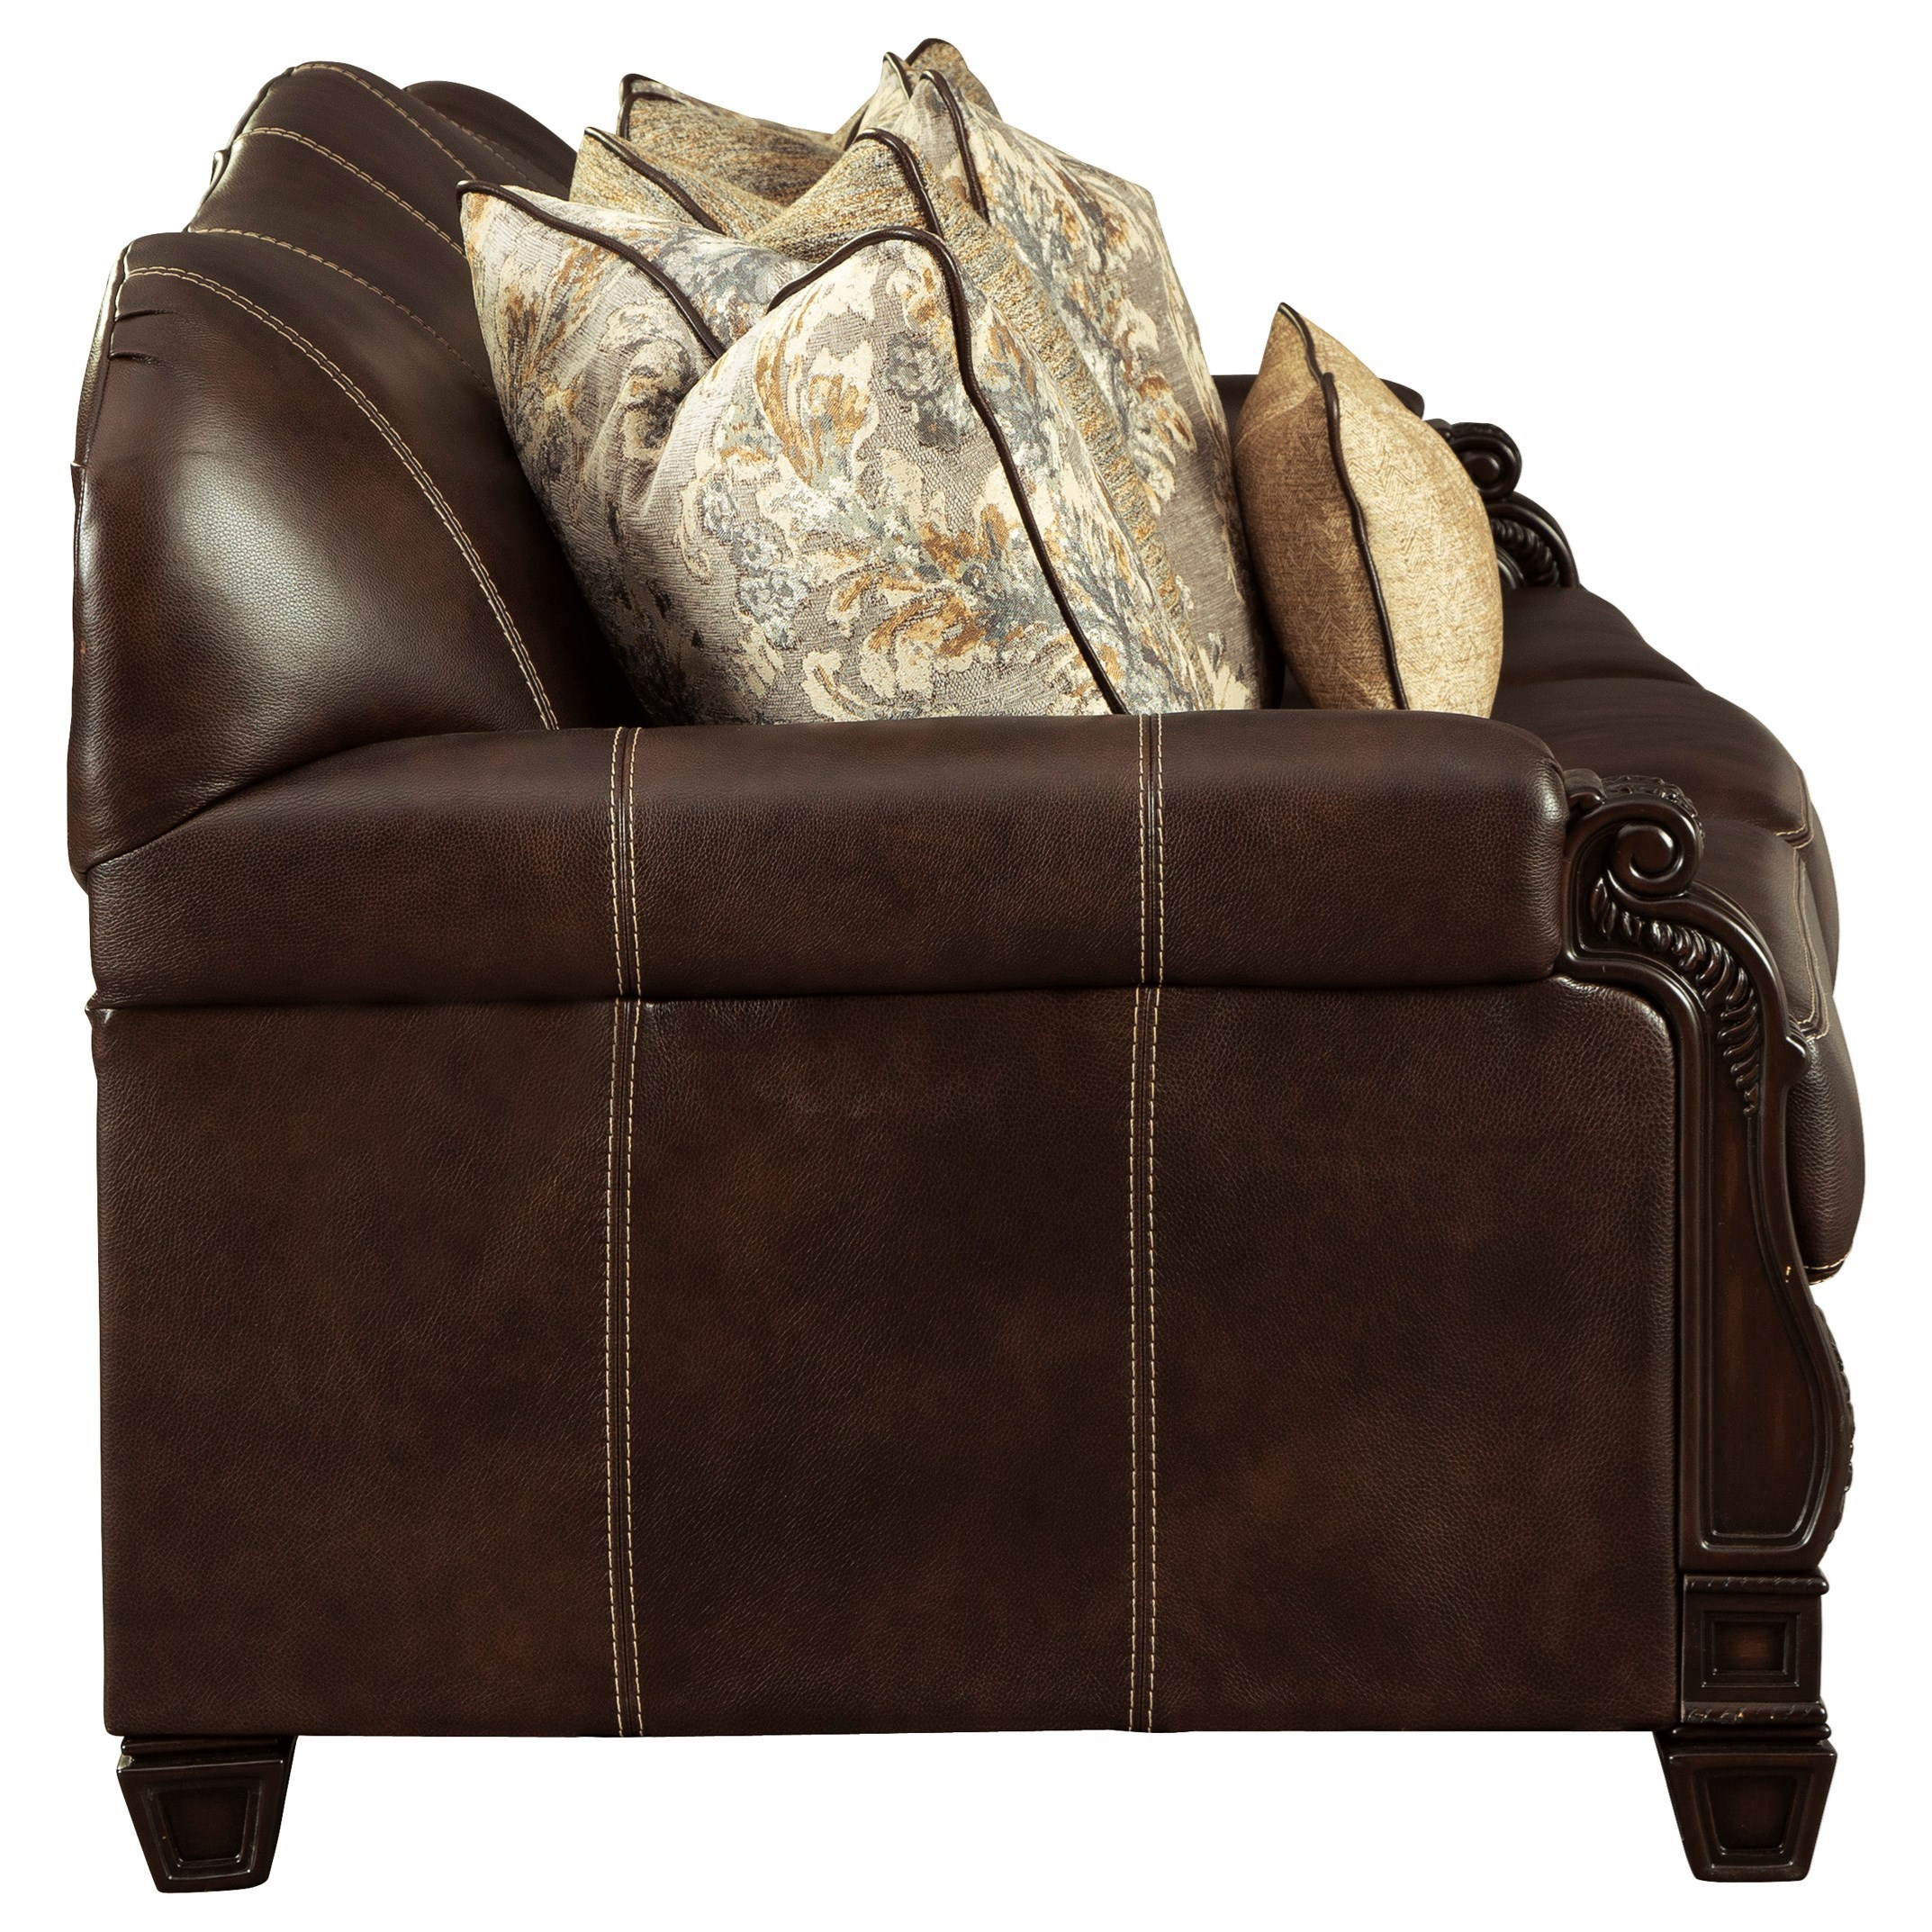 Signature Design by Ashley Embrook Traditional Sofa   A1 ...